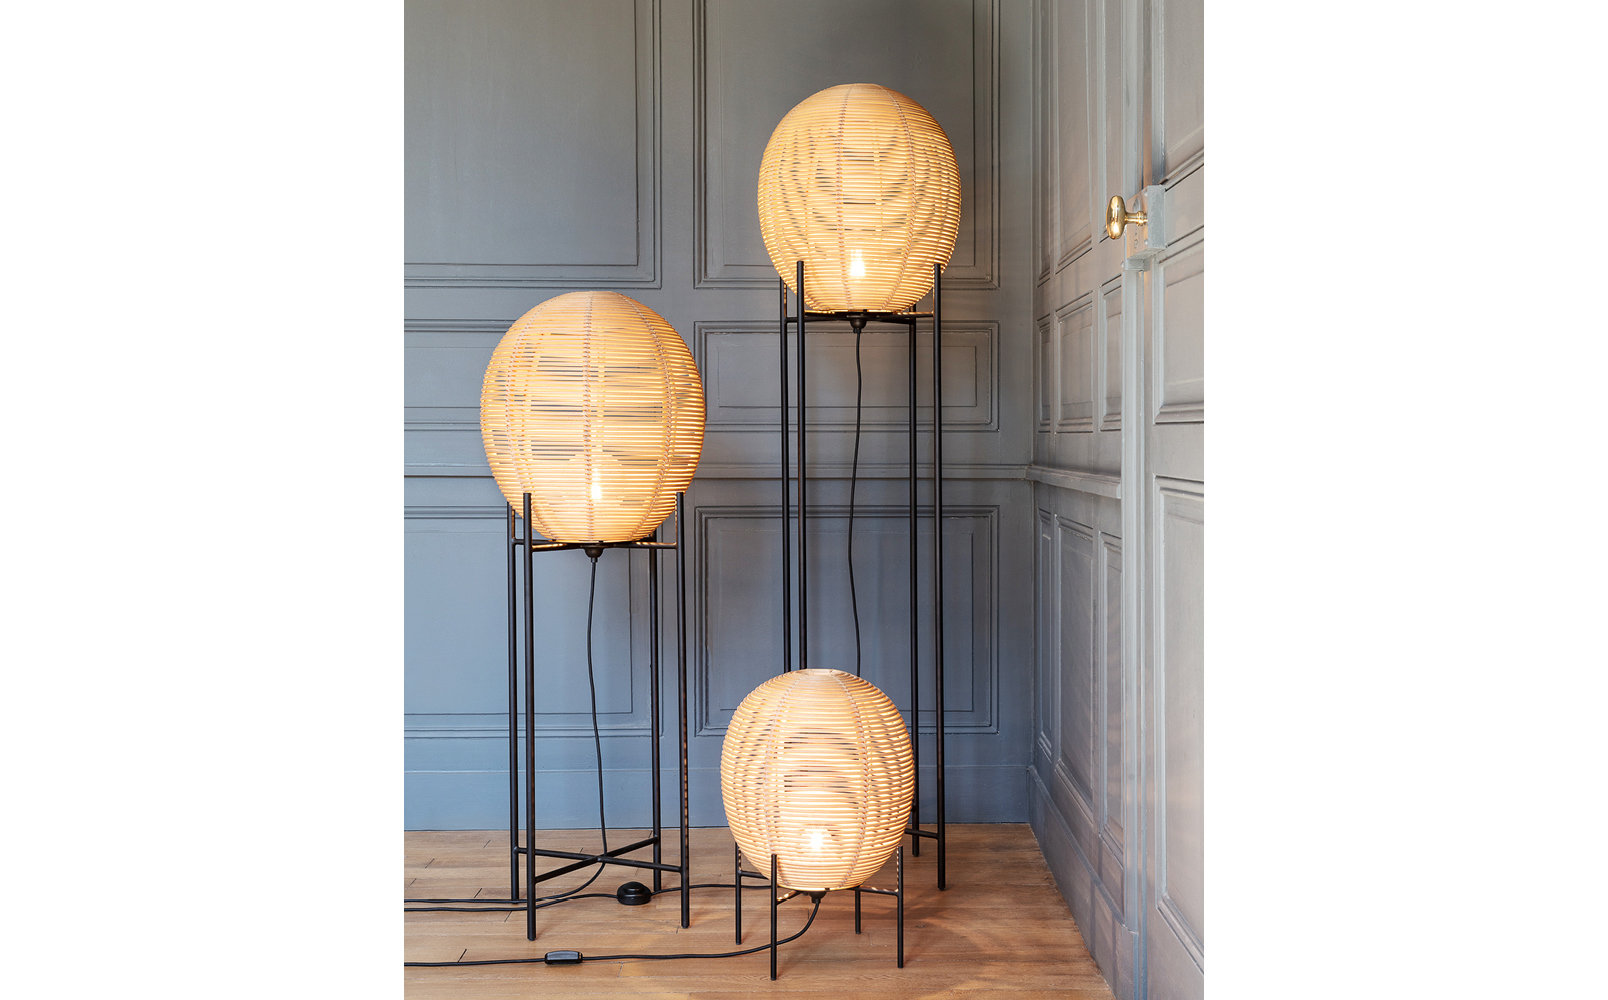 vincent-sheppard-sari-floor-lamps